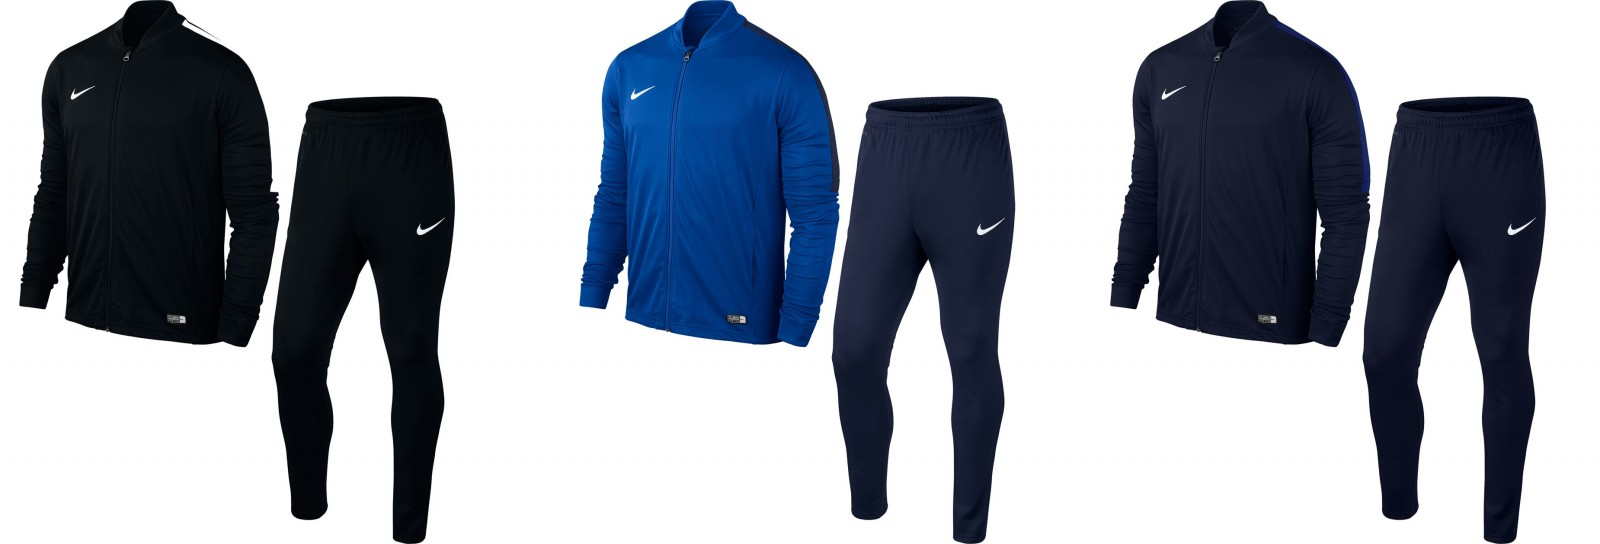 021af7e561152 NIKE HEREN MEN TRAININGSANZUG SPORTANZUG JOGGINGANZUG FOOTBALL ACADEMY 16  1269